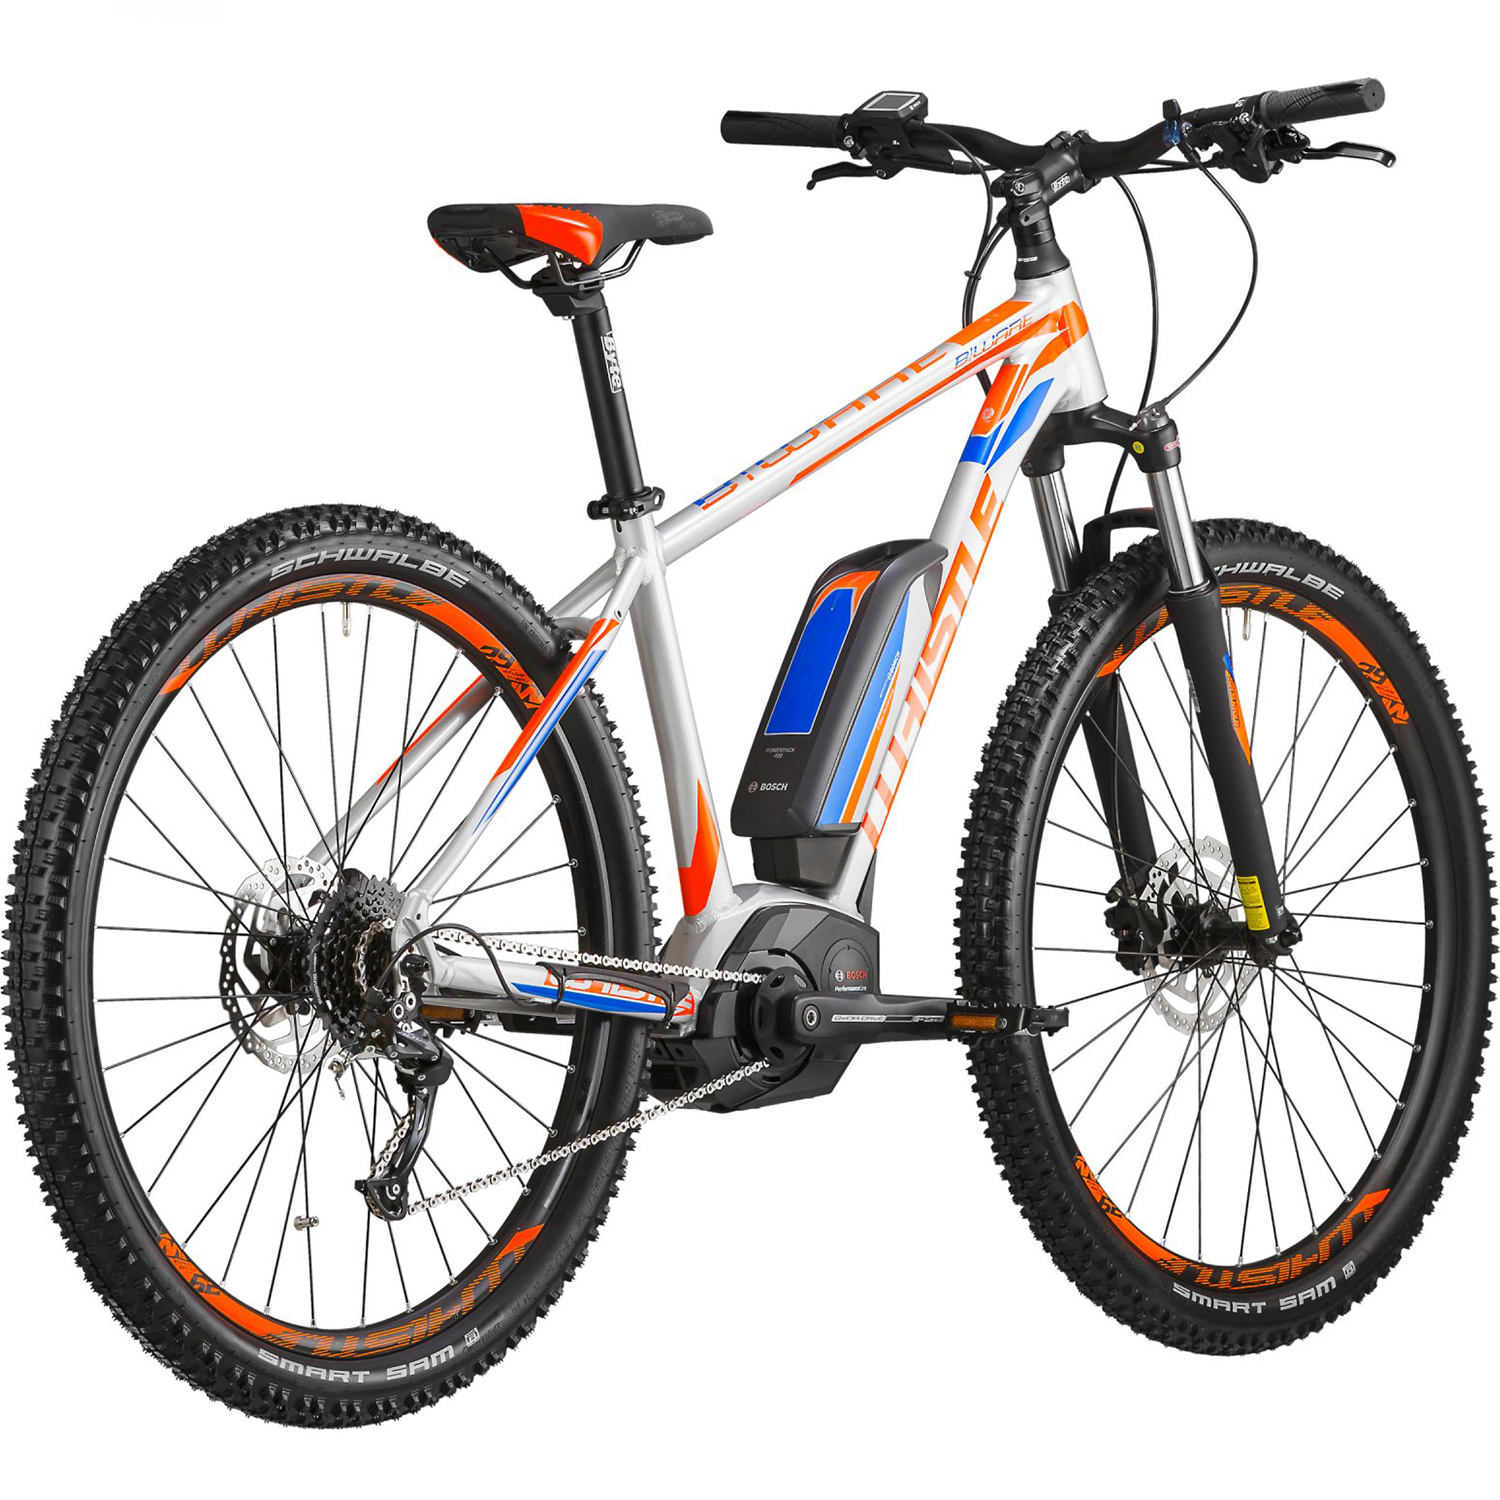 29 zoll whistle cx400 mtb e bike mountainbike pedelec. Black Bedroom Furniture Sets. Home Design Ideas